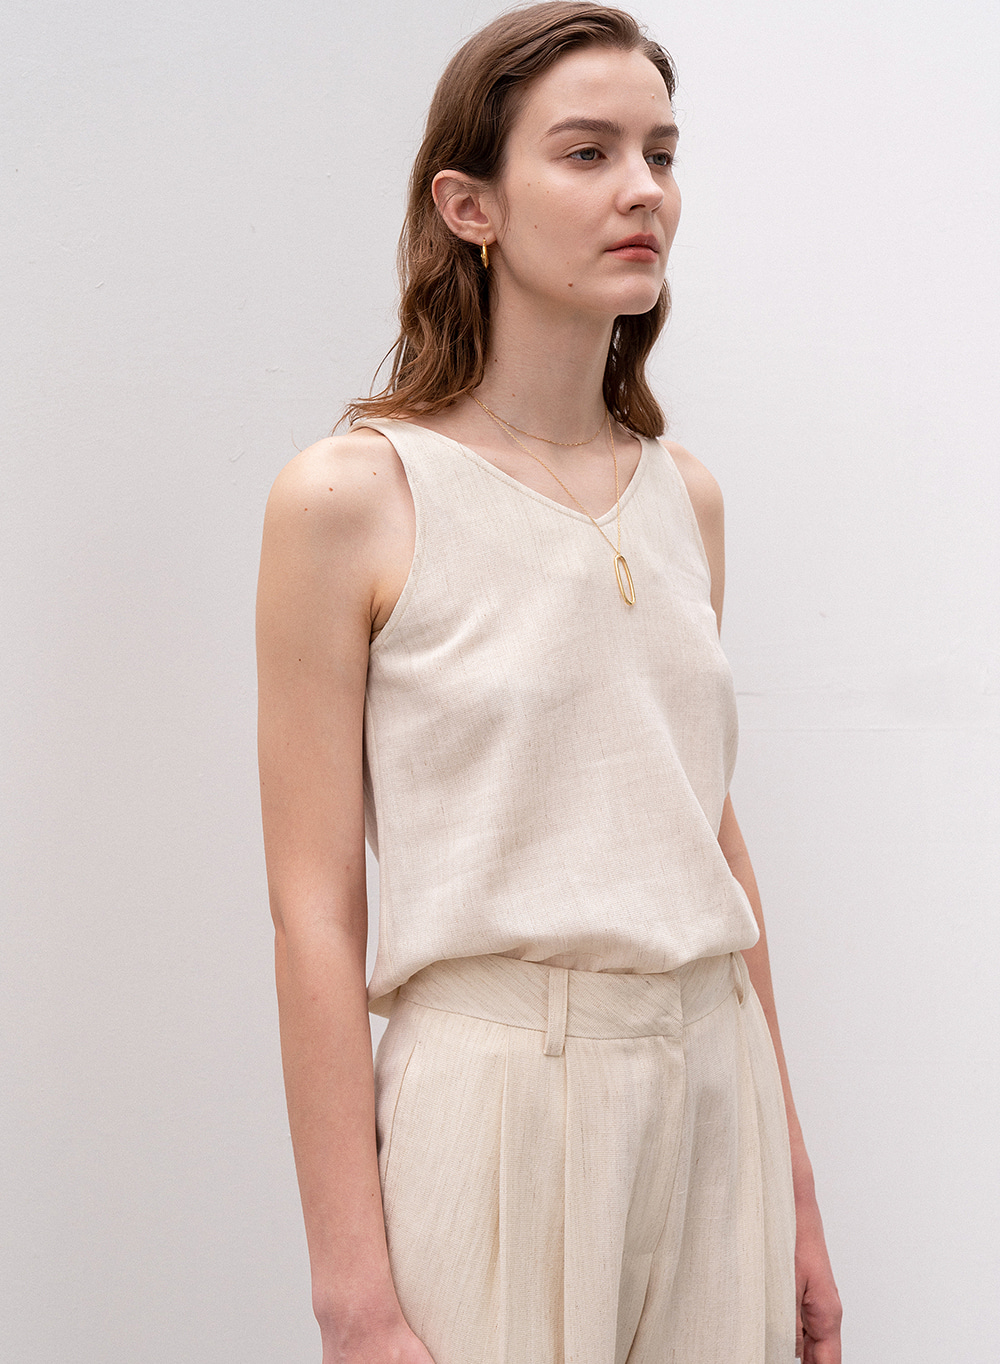 [ESSENTIAL] Premium Wool Linen Sleeveless Ivory